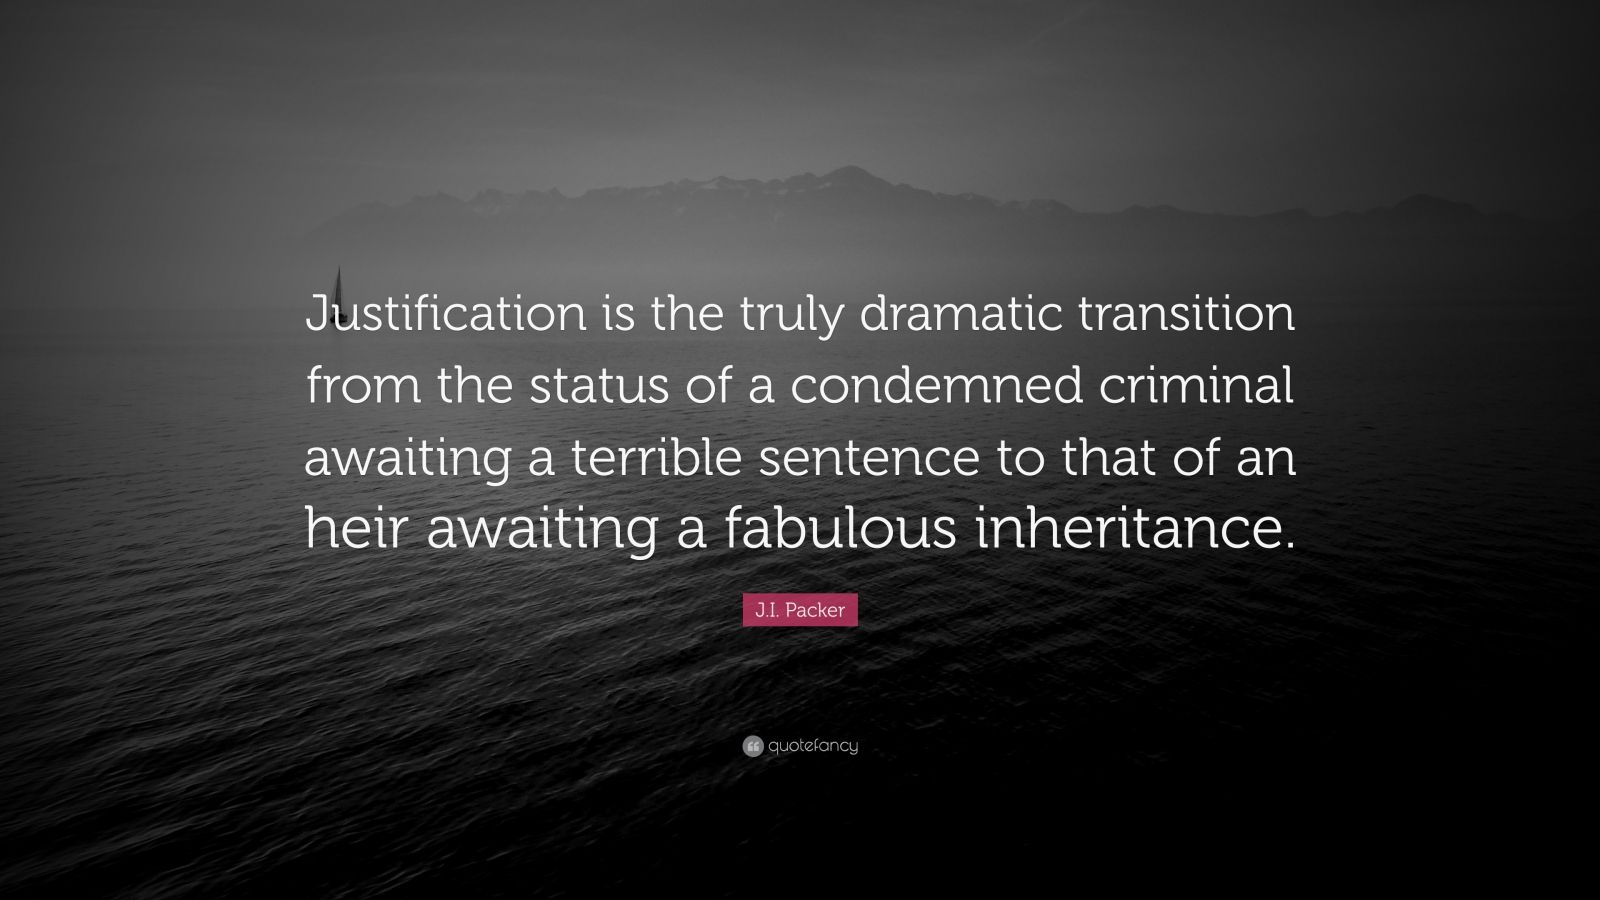 """J.I. Packer Quote: """"Justification is the truly dramatic transition from the status of a condemned criminal awaiting a terrible sentence to that of an heir awaiting a fabulous inheritance."""""""